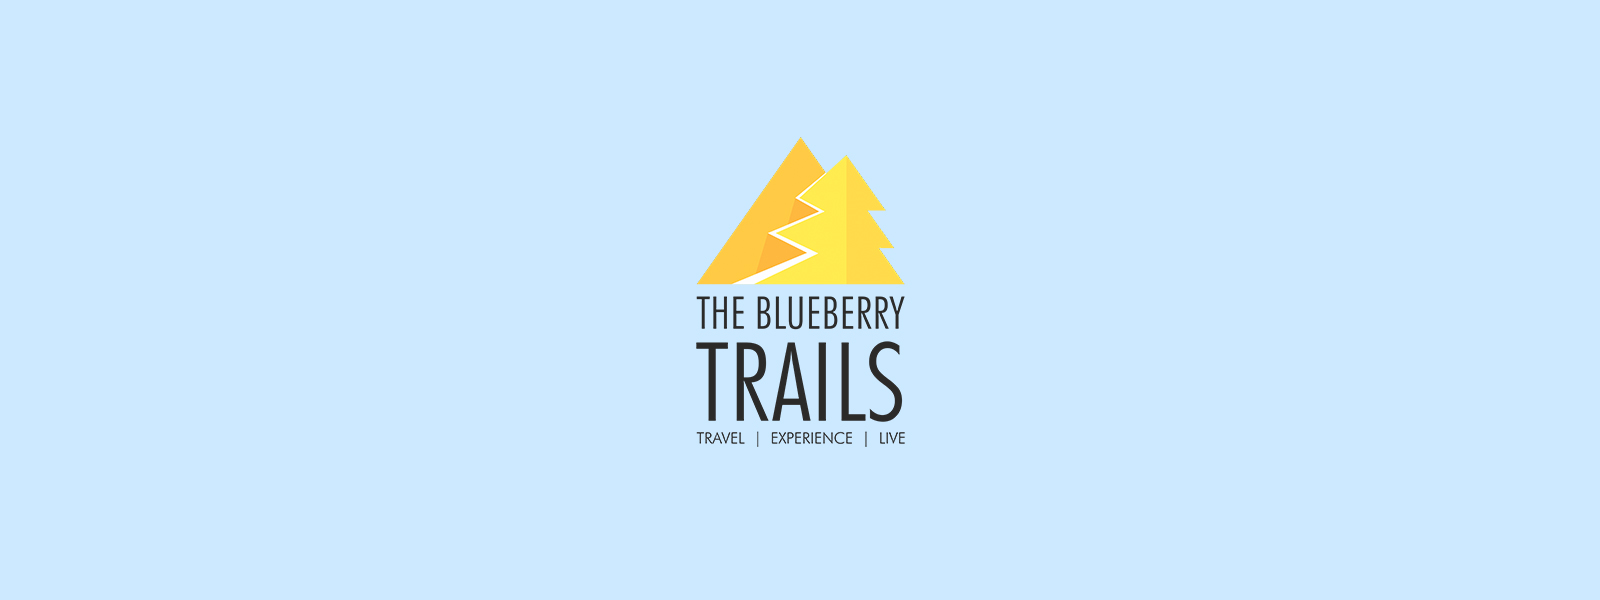 The BlueBerry Trails Travel